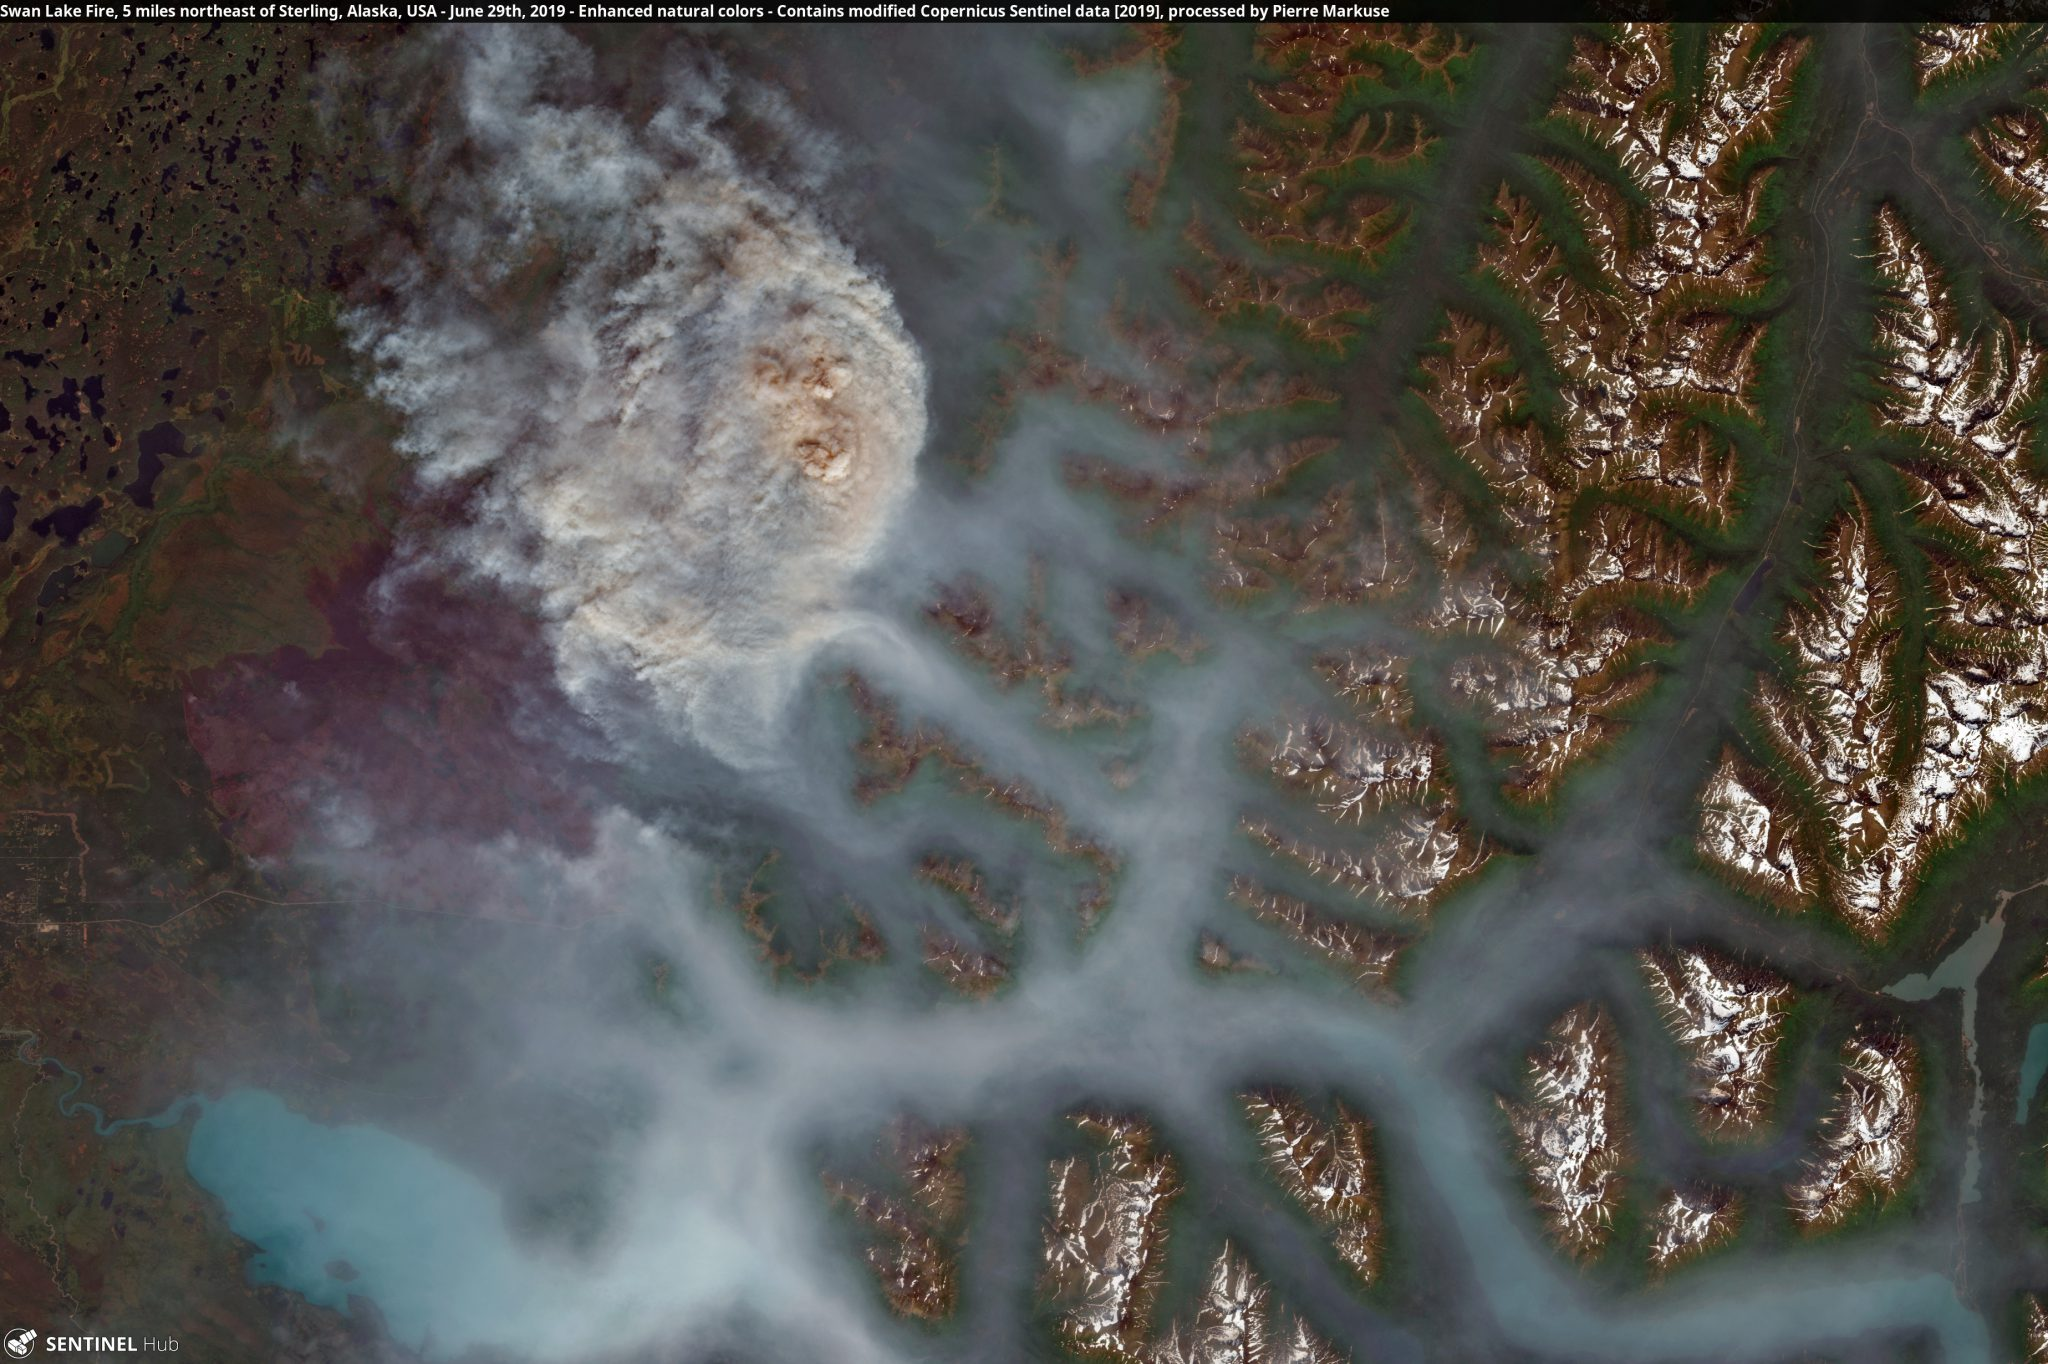 desc:Swan Lake Fire, 5 miles northeast of Sterling, Alaska, USA Copernicus/Pierre Markuse